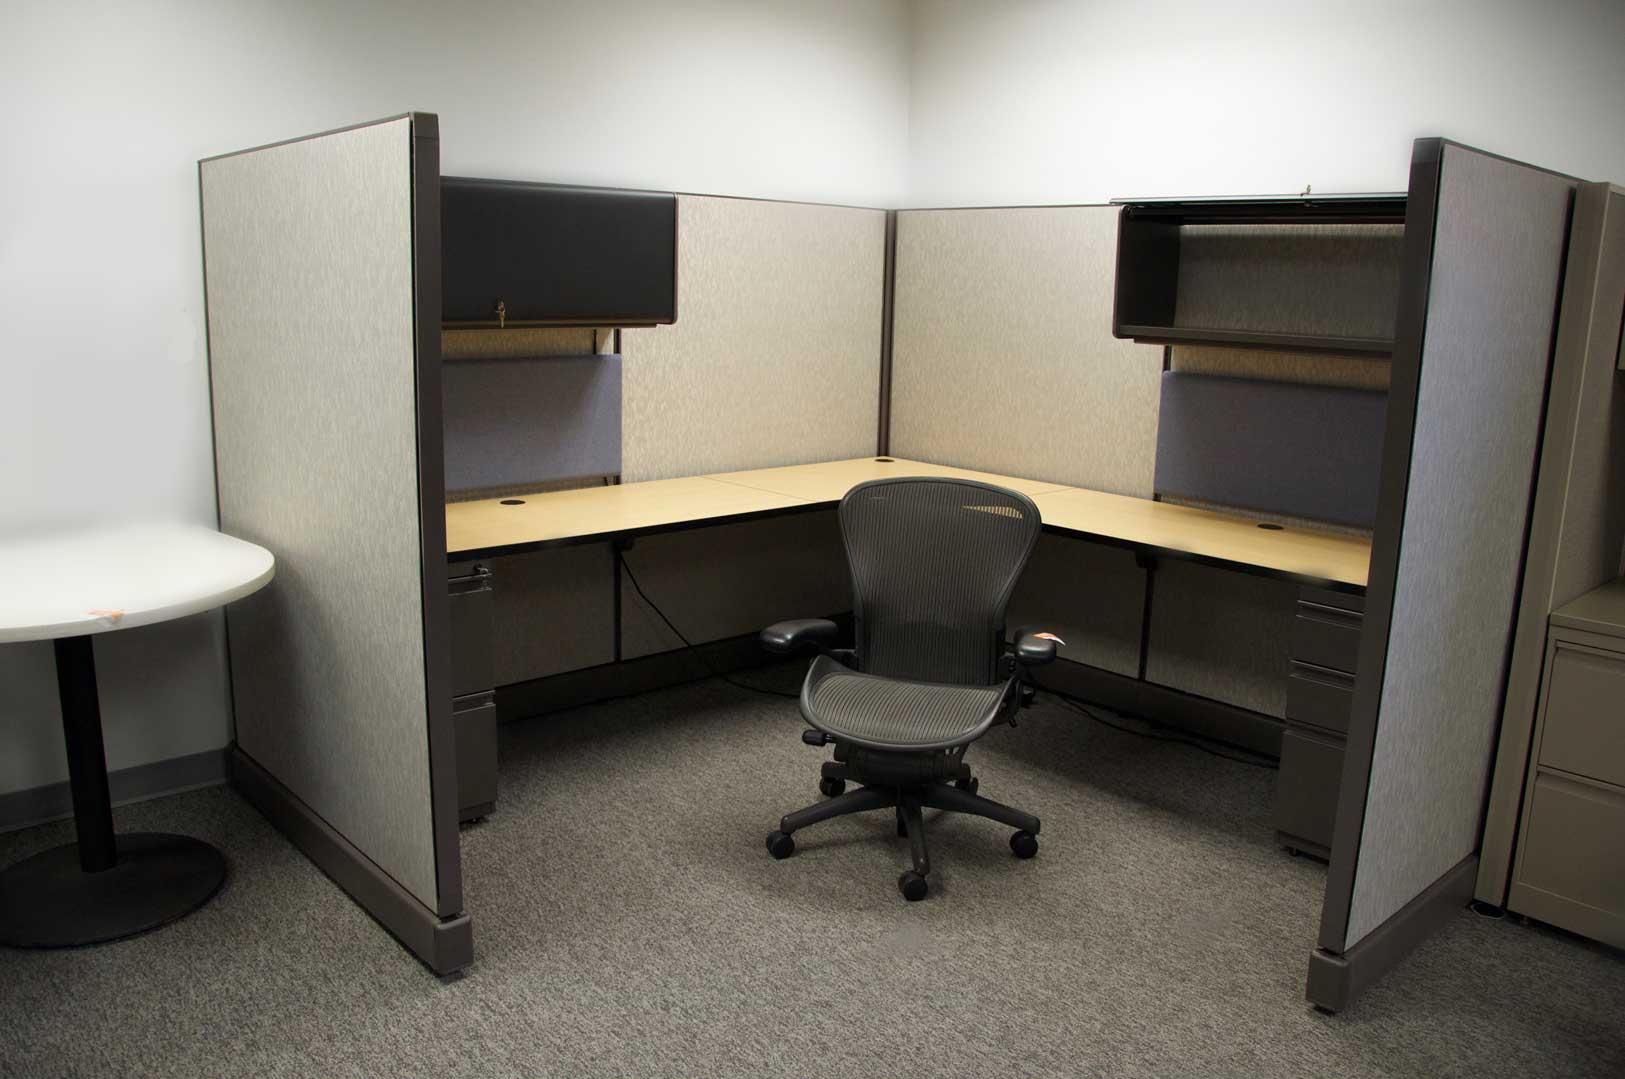 contemporary cubicle desk home desk design. Simple Desk Office Workstations And Cubicles On Contemporary Cubicle Desk Home Design